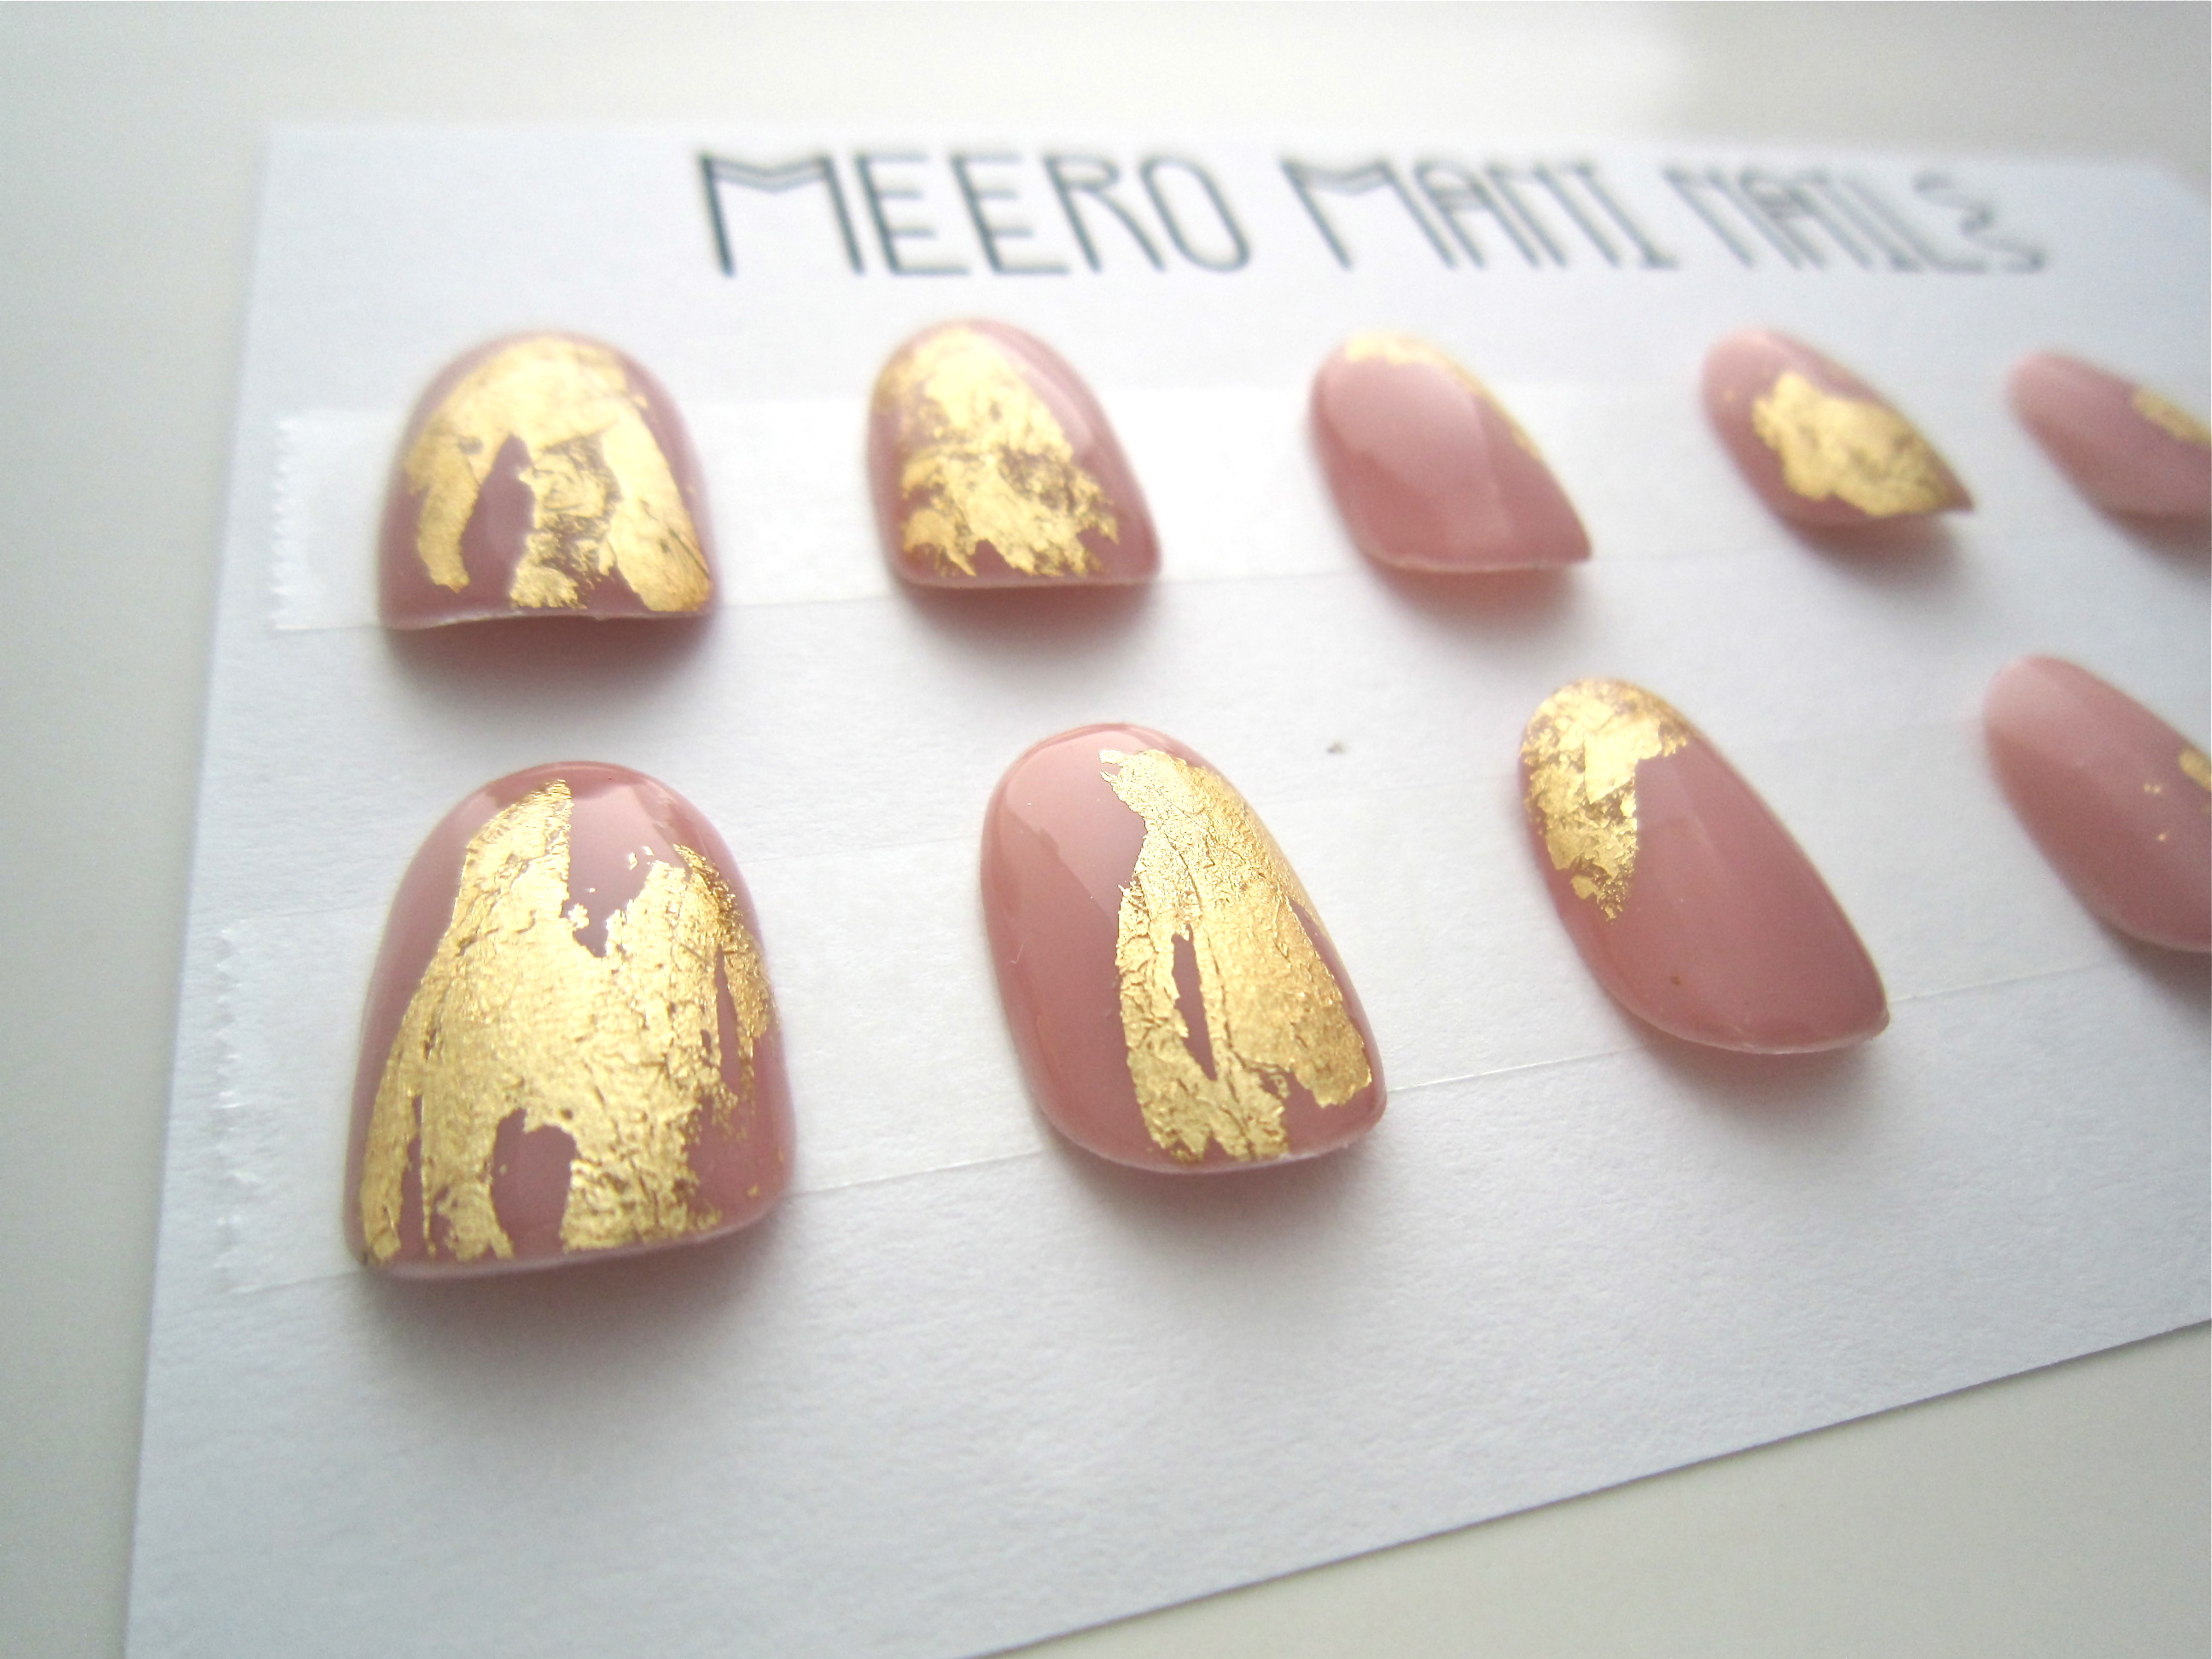 Gilded Pink Arabesque Gold Leaf press on nails set · MEERO MANI ...